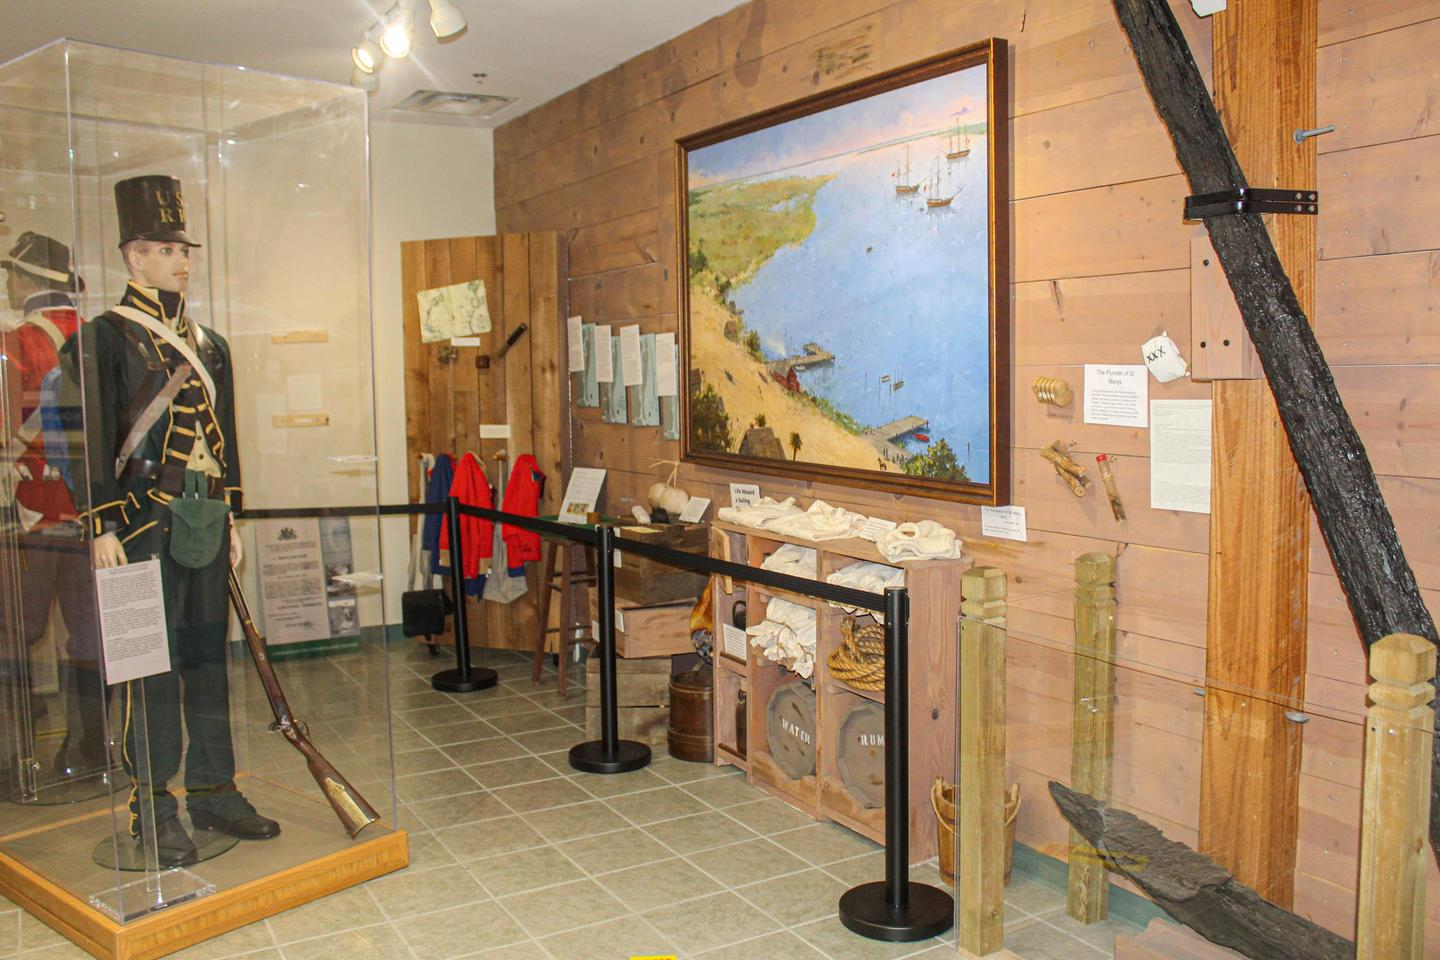 War of 1812 ExhibitThe British invasion of Cumberland Island during the War of 1812 is highlighted in the museum.